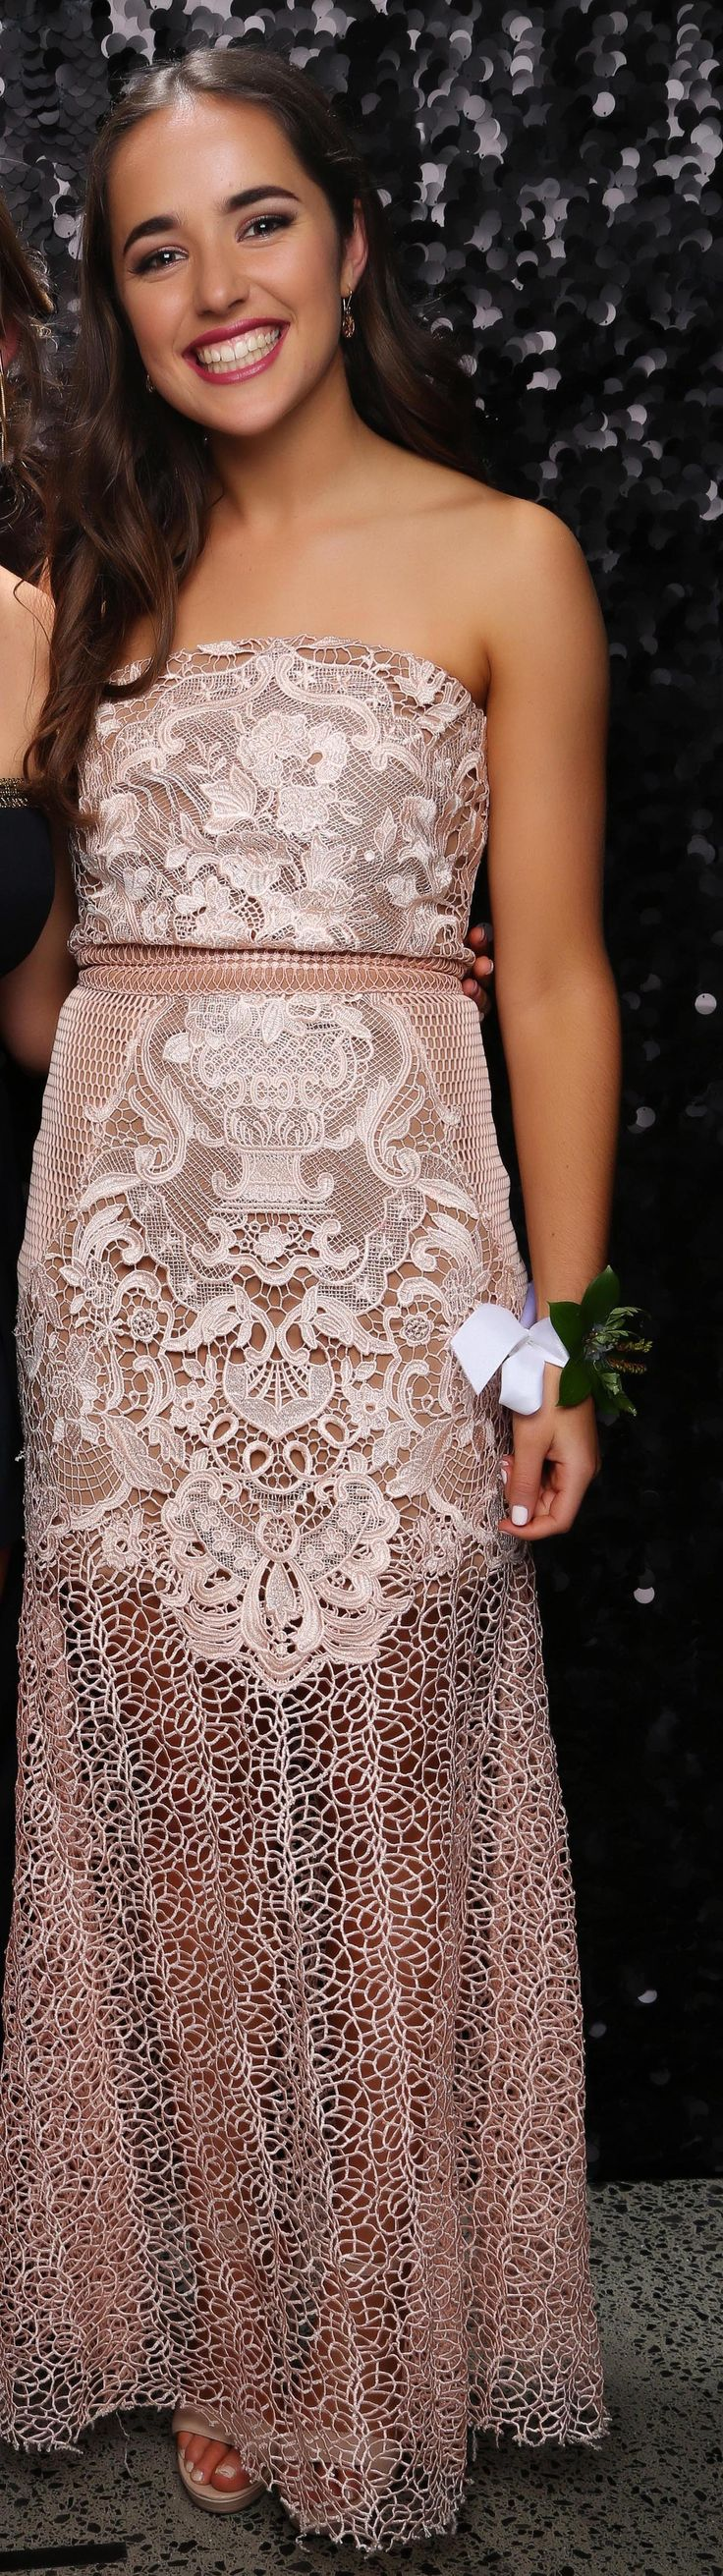 St Kent's School Ball 2017. Love the lace detail!